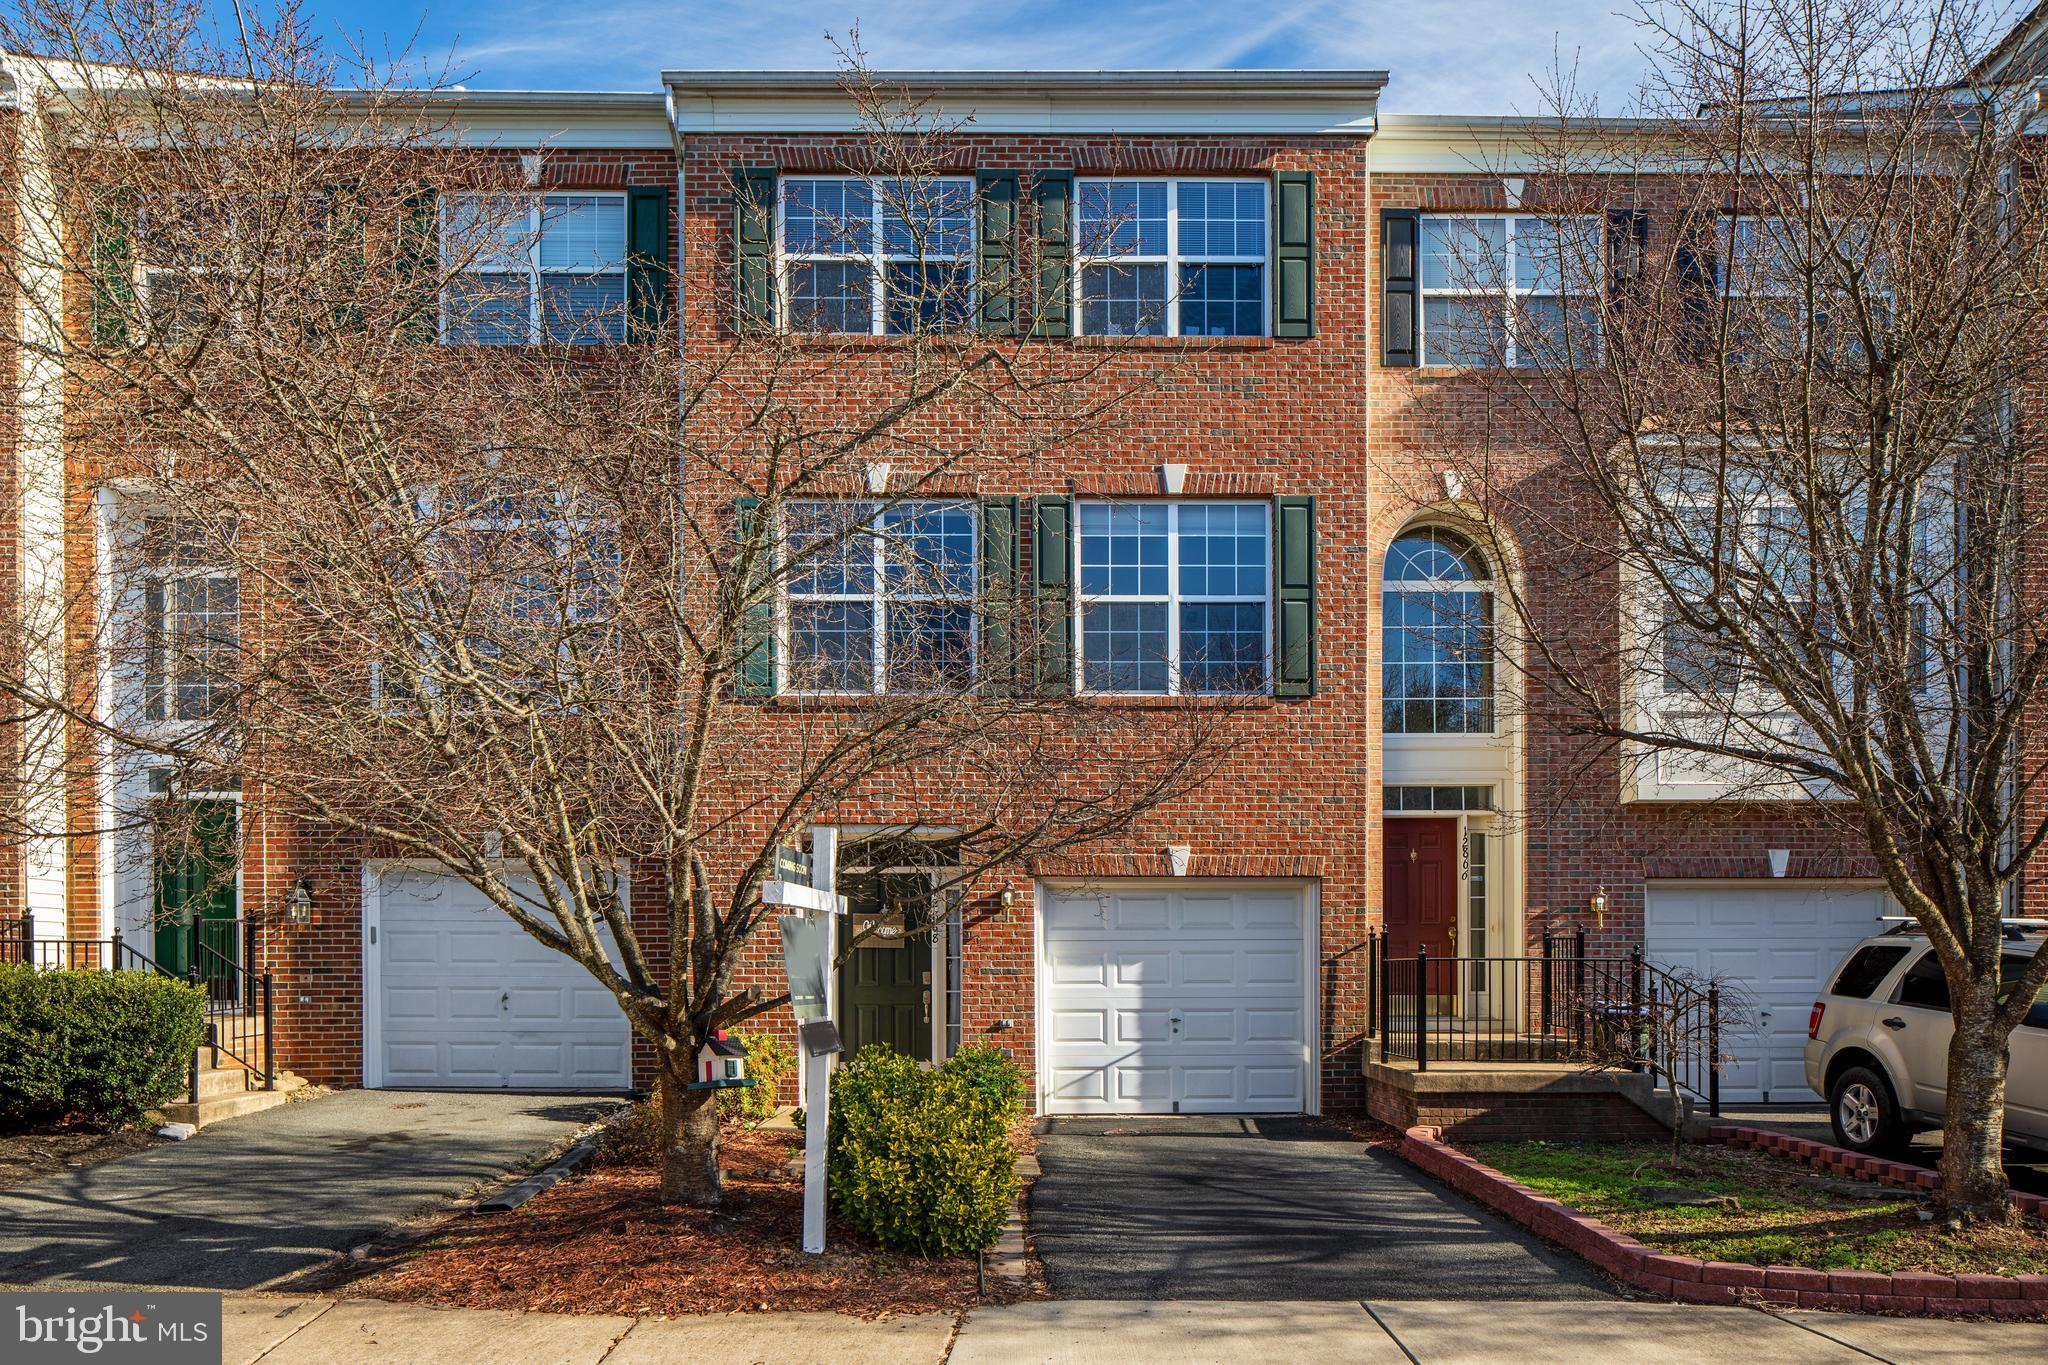 If You're Looking for a Great Location, Wonderful Space, 1 Car Garage, 3 Bedrooms and 3 Full Bathroo